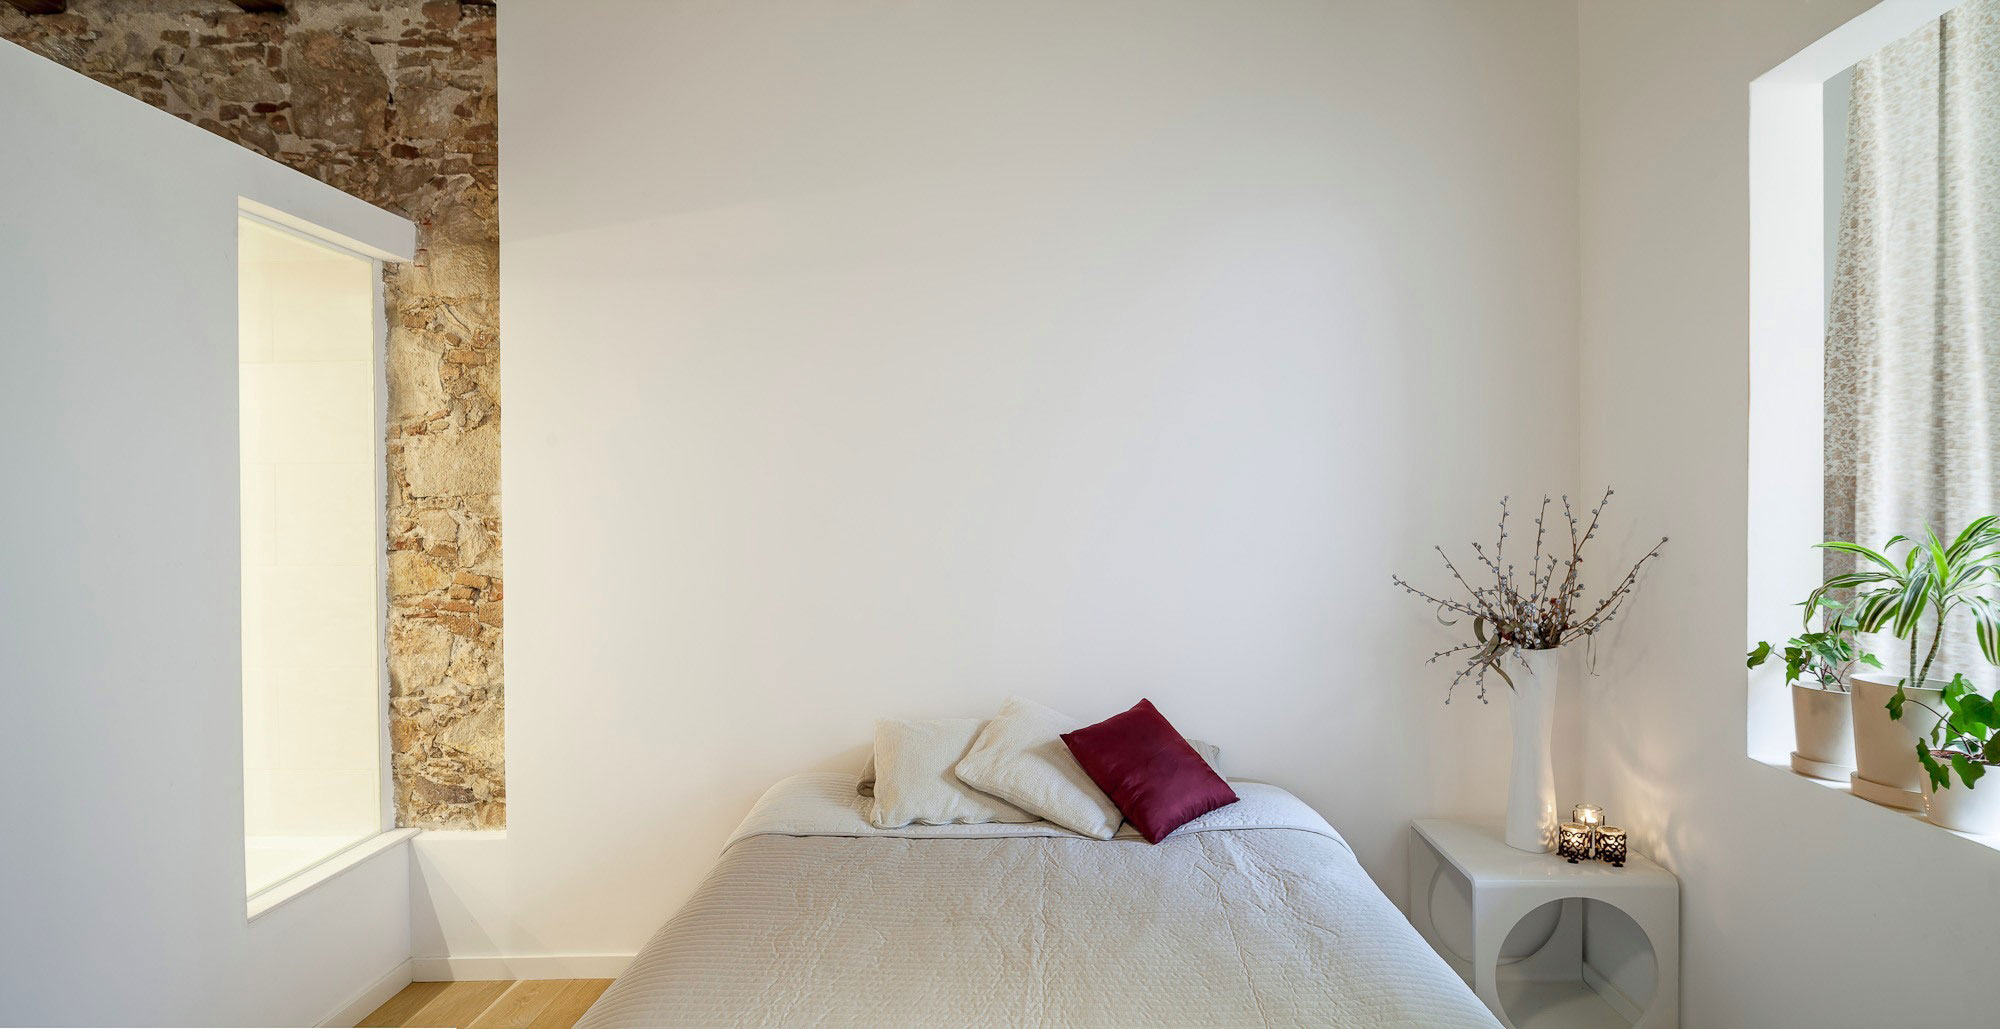 Renovation Apartment in Les Corts bedroom